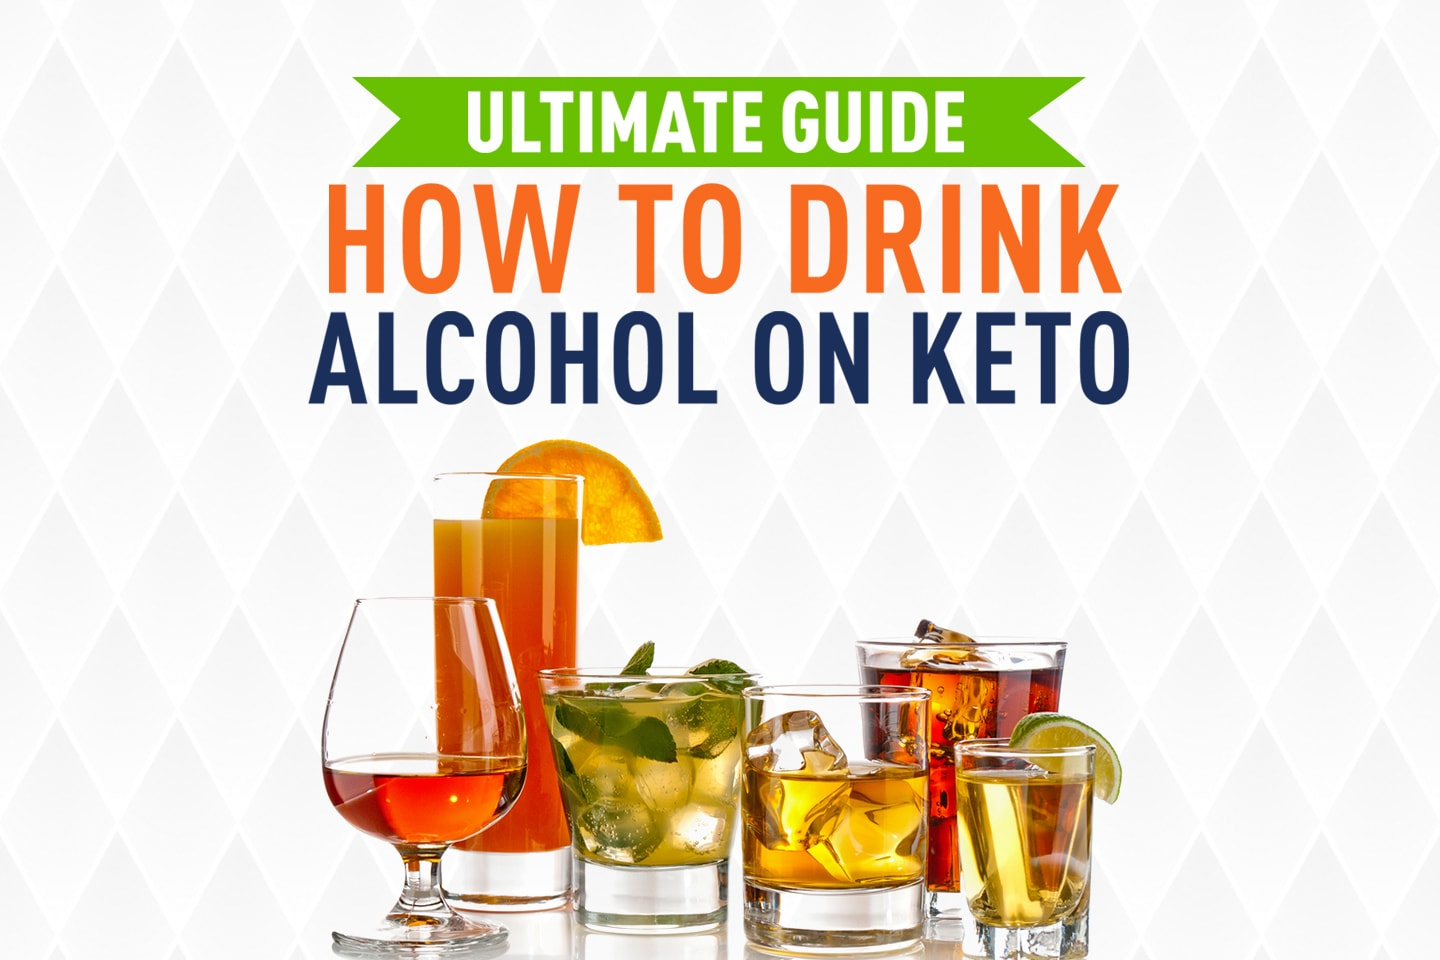 Ultimate Guide How To Drink Alcohol on Keto